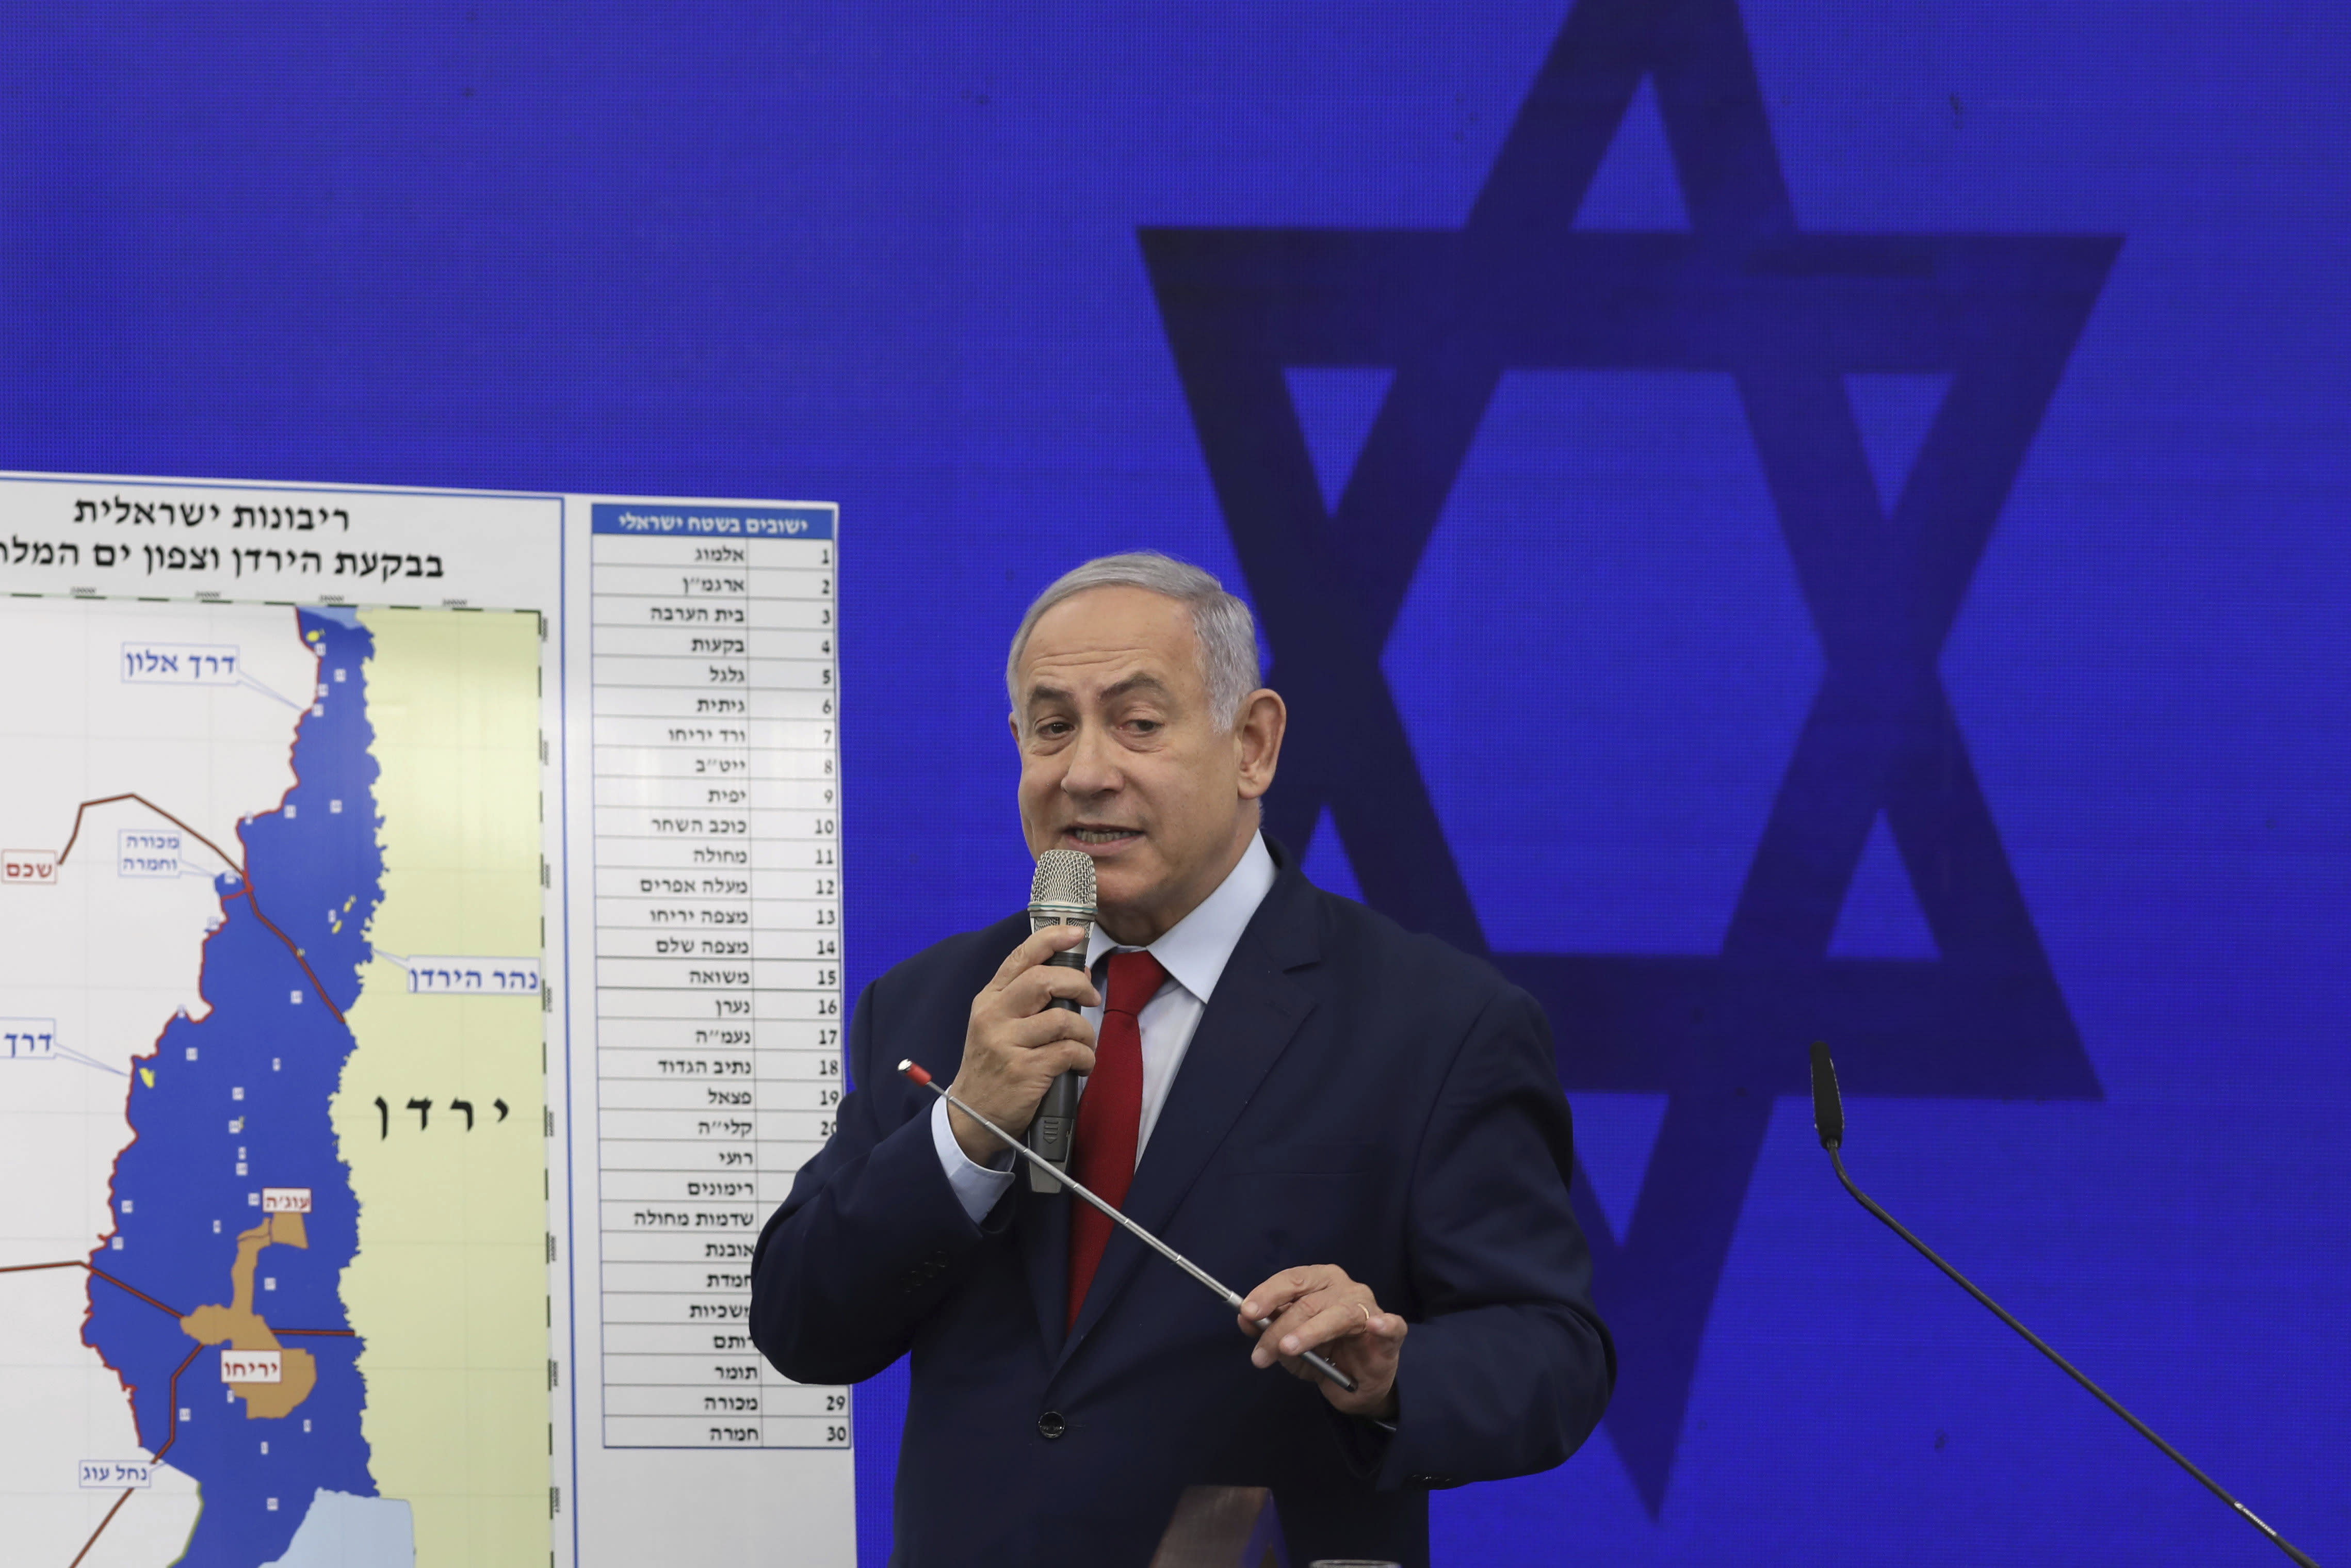 Israeli Prime Minister Benjamin Netanyahu speaks during a press conference in Tel Aviv, Israel, Tuesday, Sept. 10, 2019. Netanyahu vowed Tuesday to begin annexing West Bank settlements if he wins national elections next week. (AP Photo/Oded Balilty)